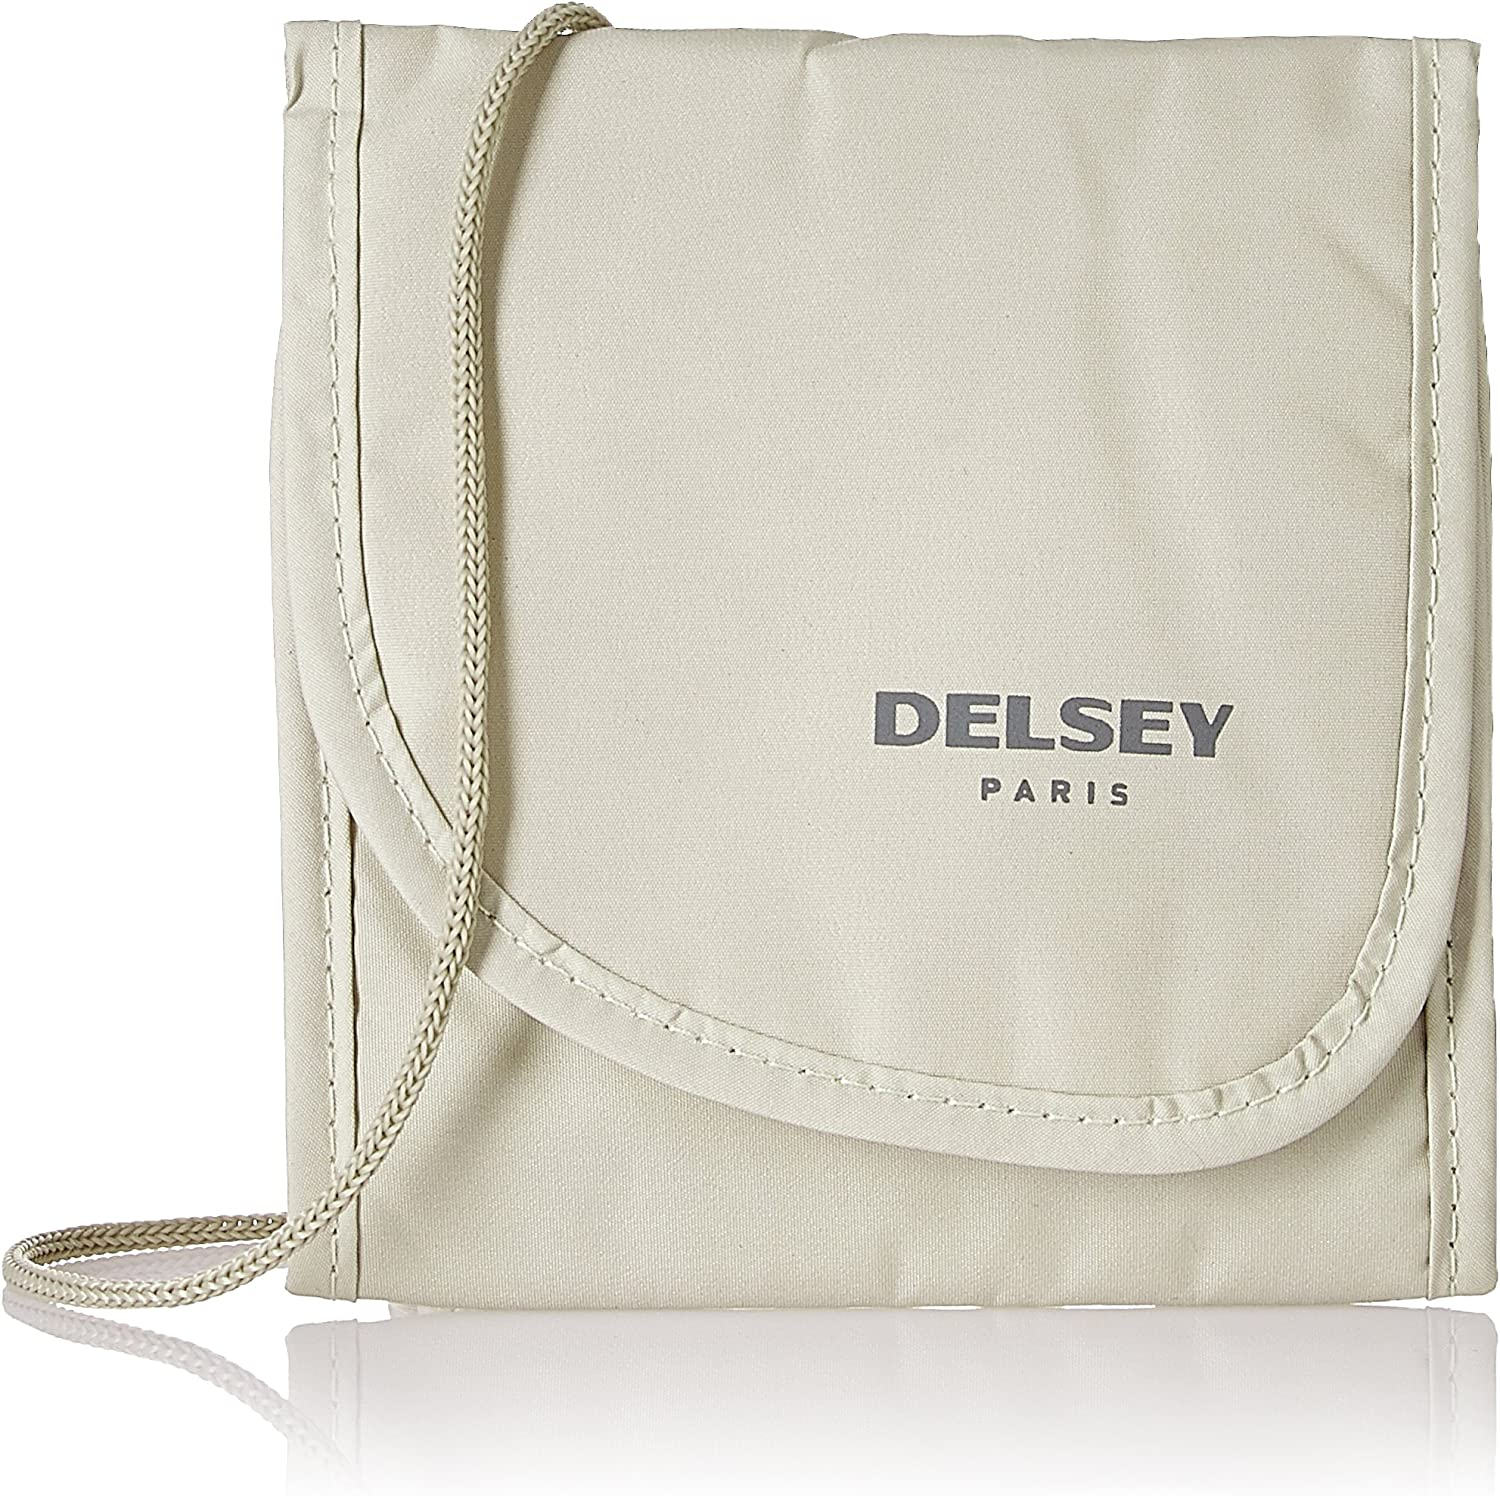 Delsey Always There Portadocumentos de Cuello, 14 cm